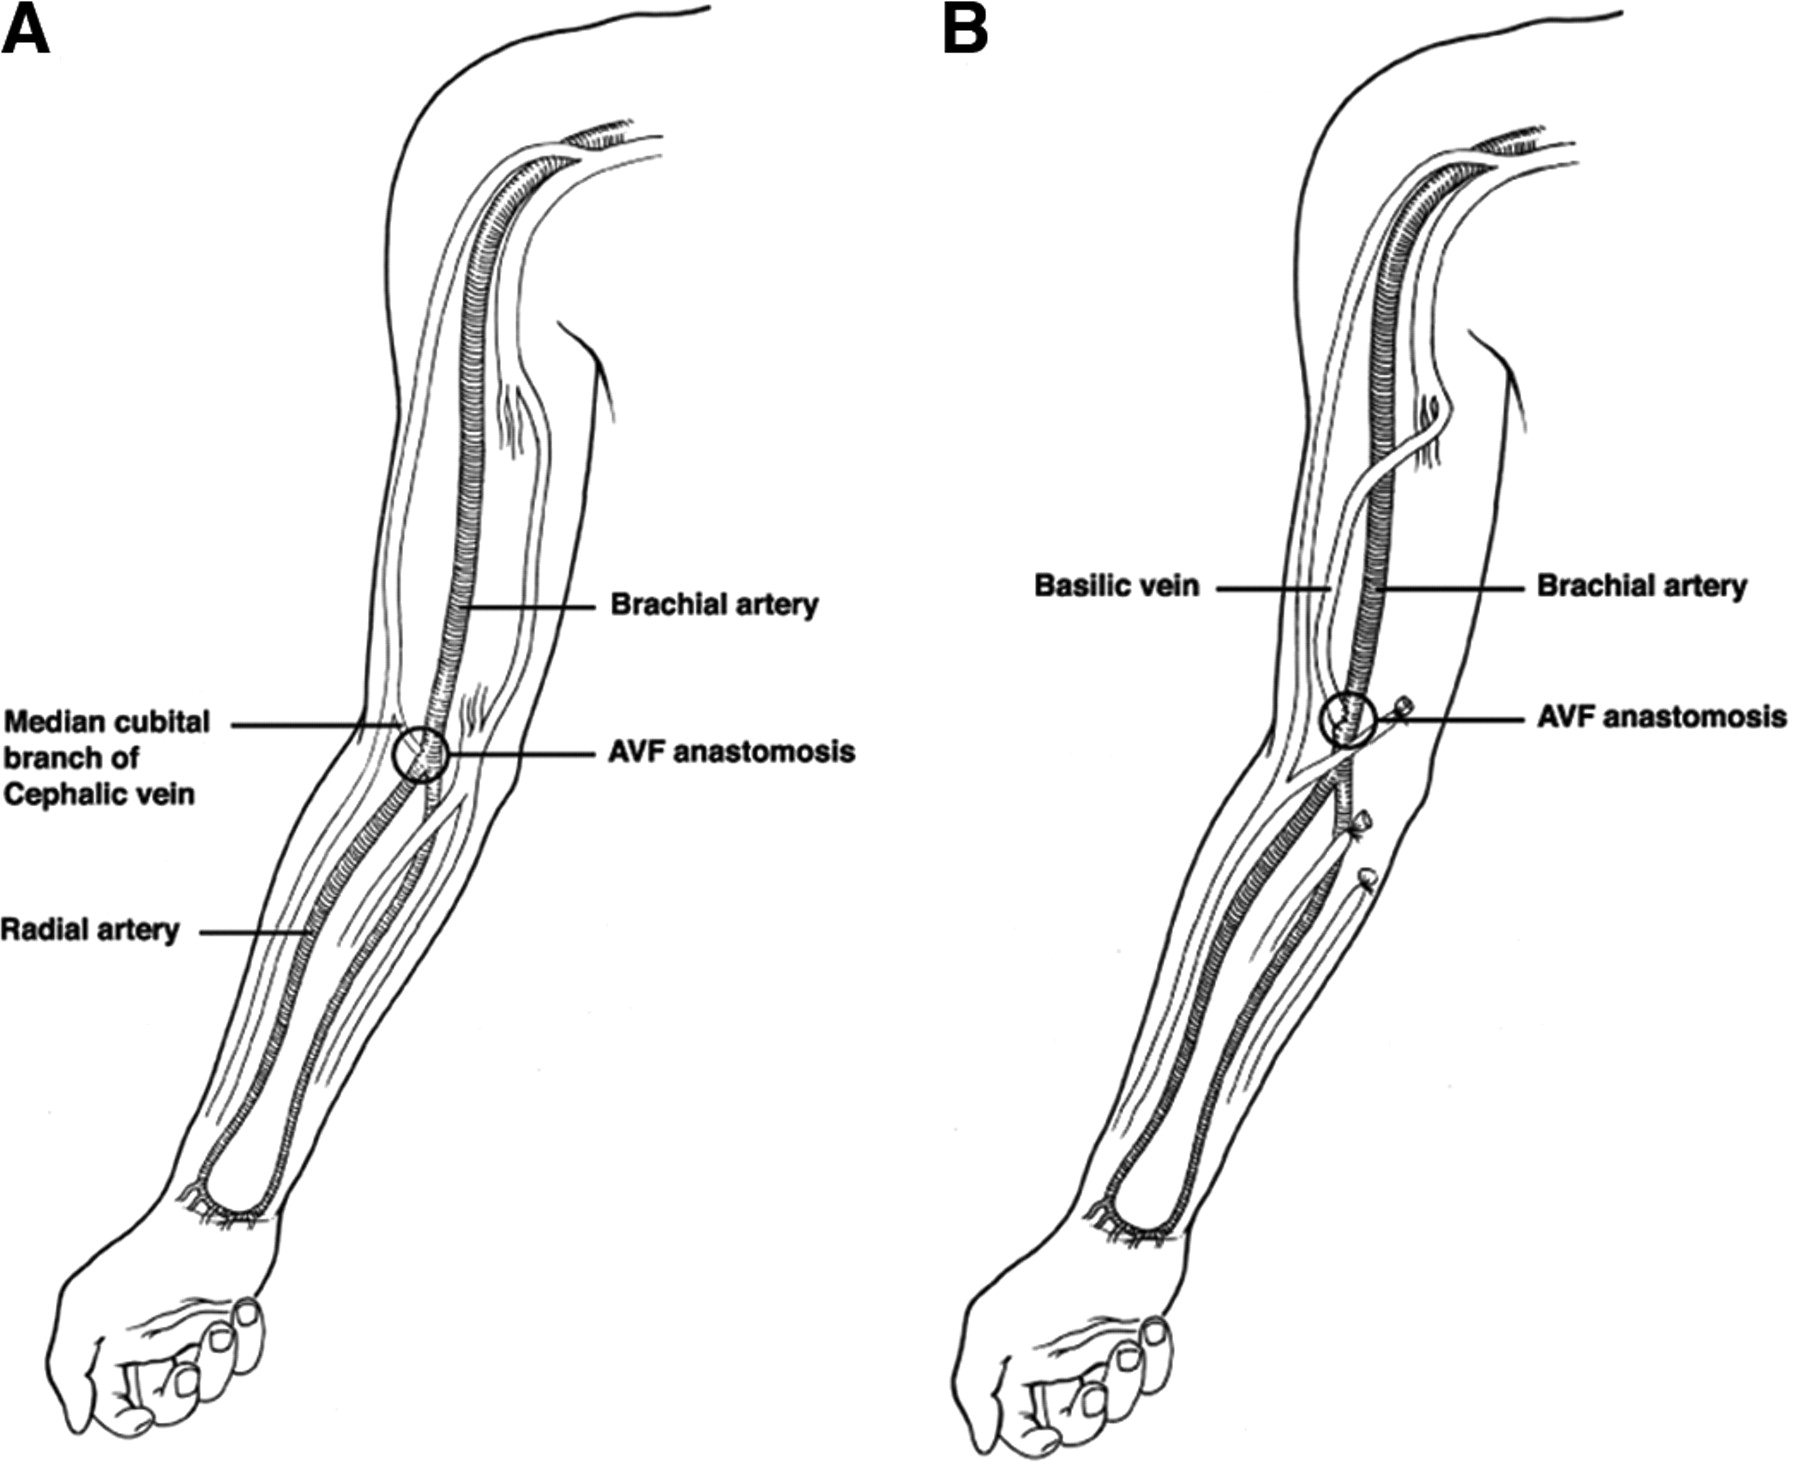 Outcomes Of Brachiocephalic Fistulas Transposed Brachiobasilic Fistulas And Upper Arm Grafts